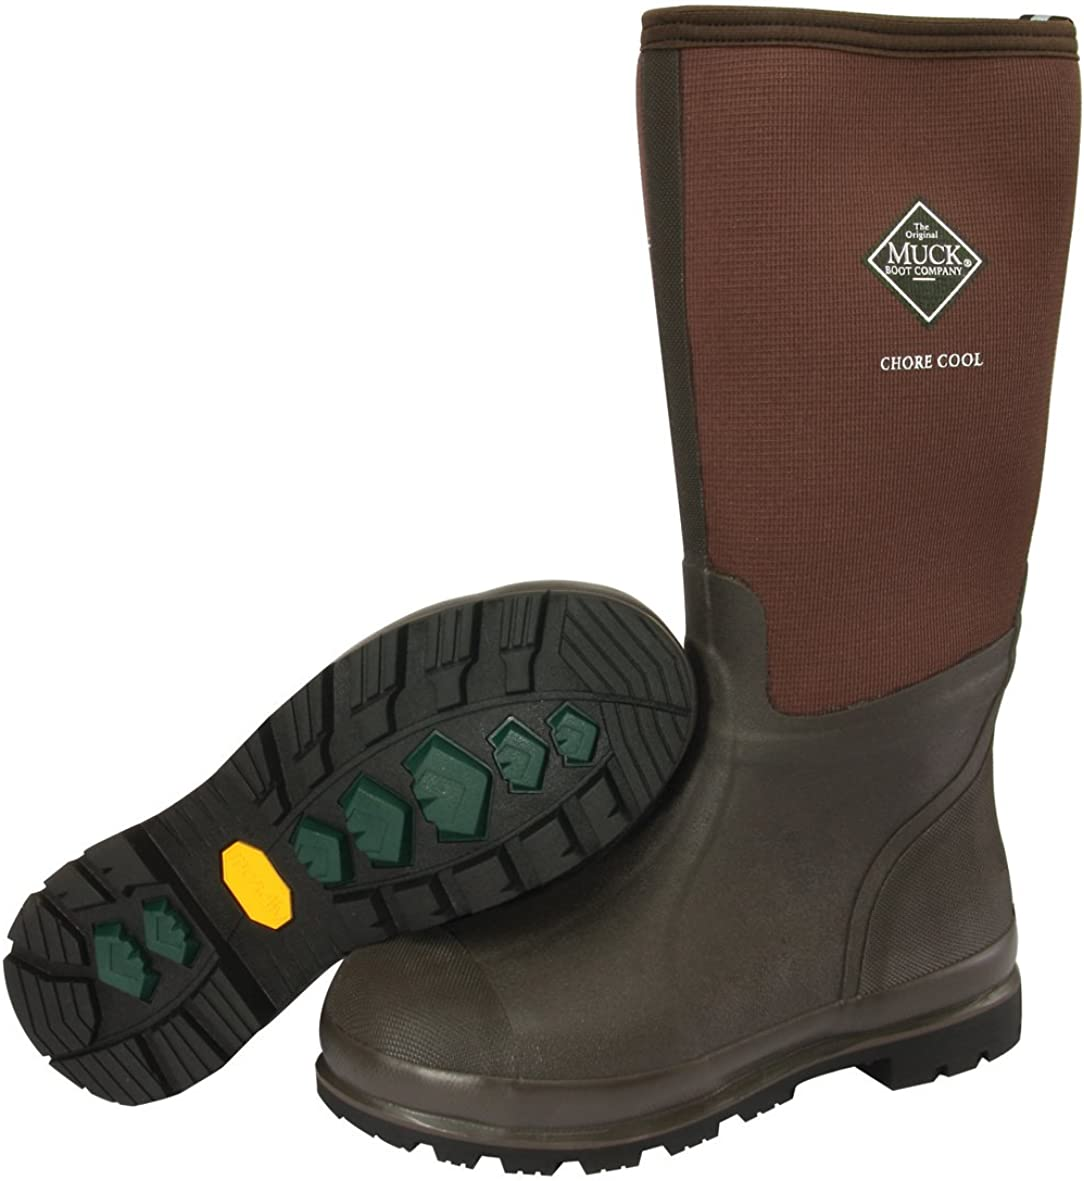 Muck Boots Chore Cool Soft Toe Warm Weather Mens Rubber Work Boot